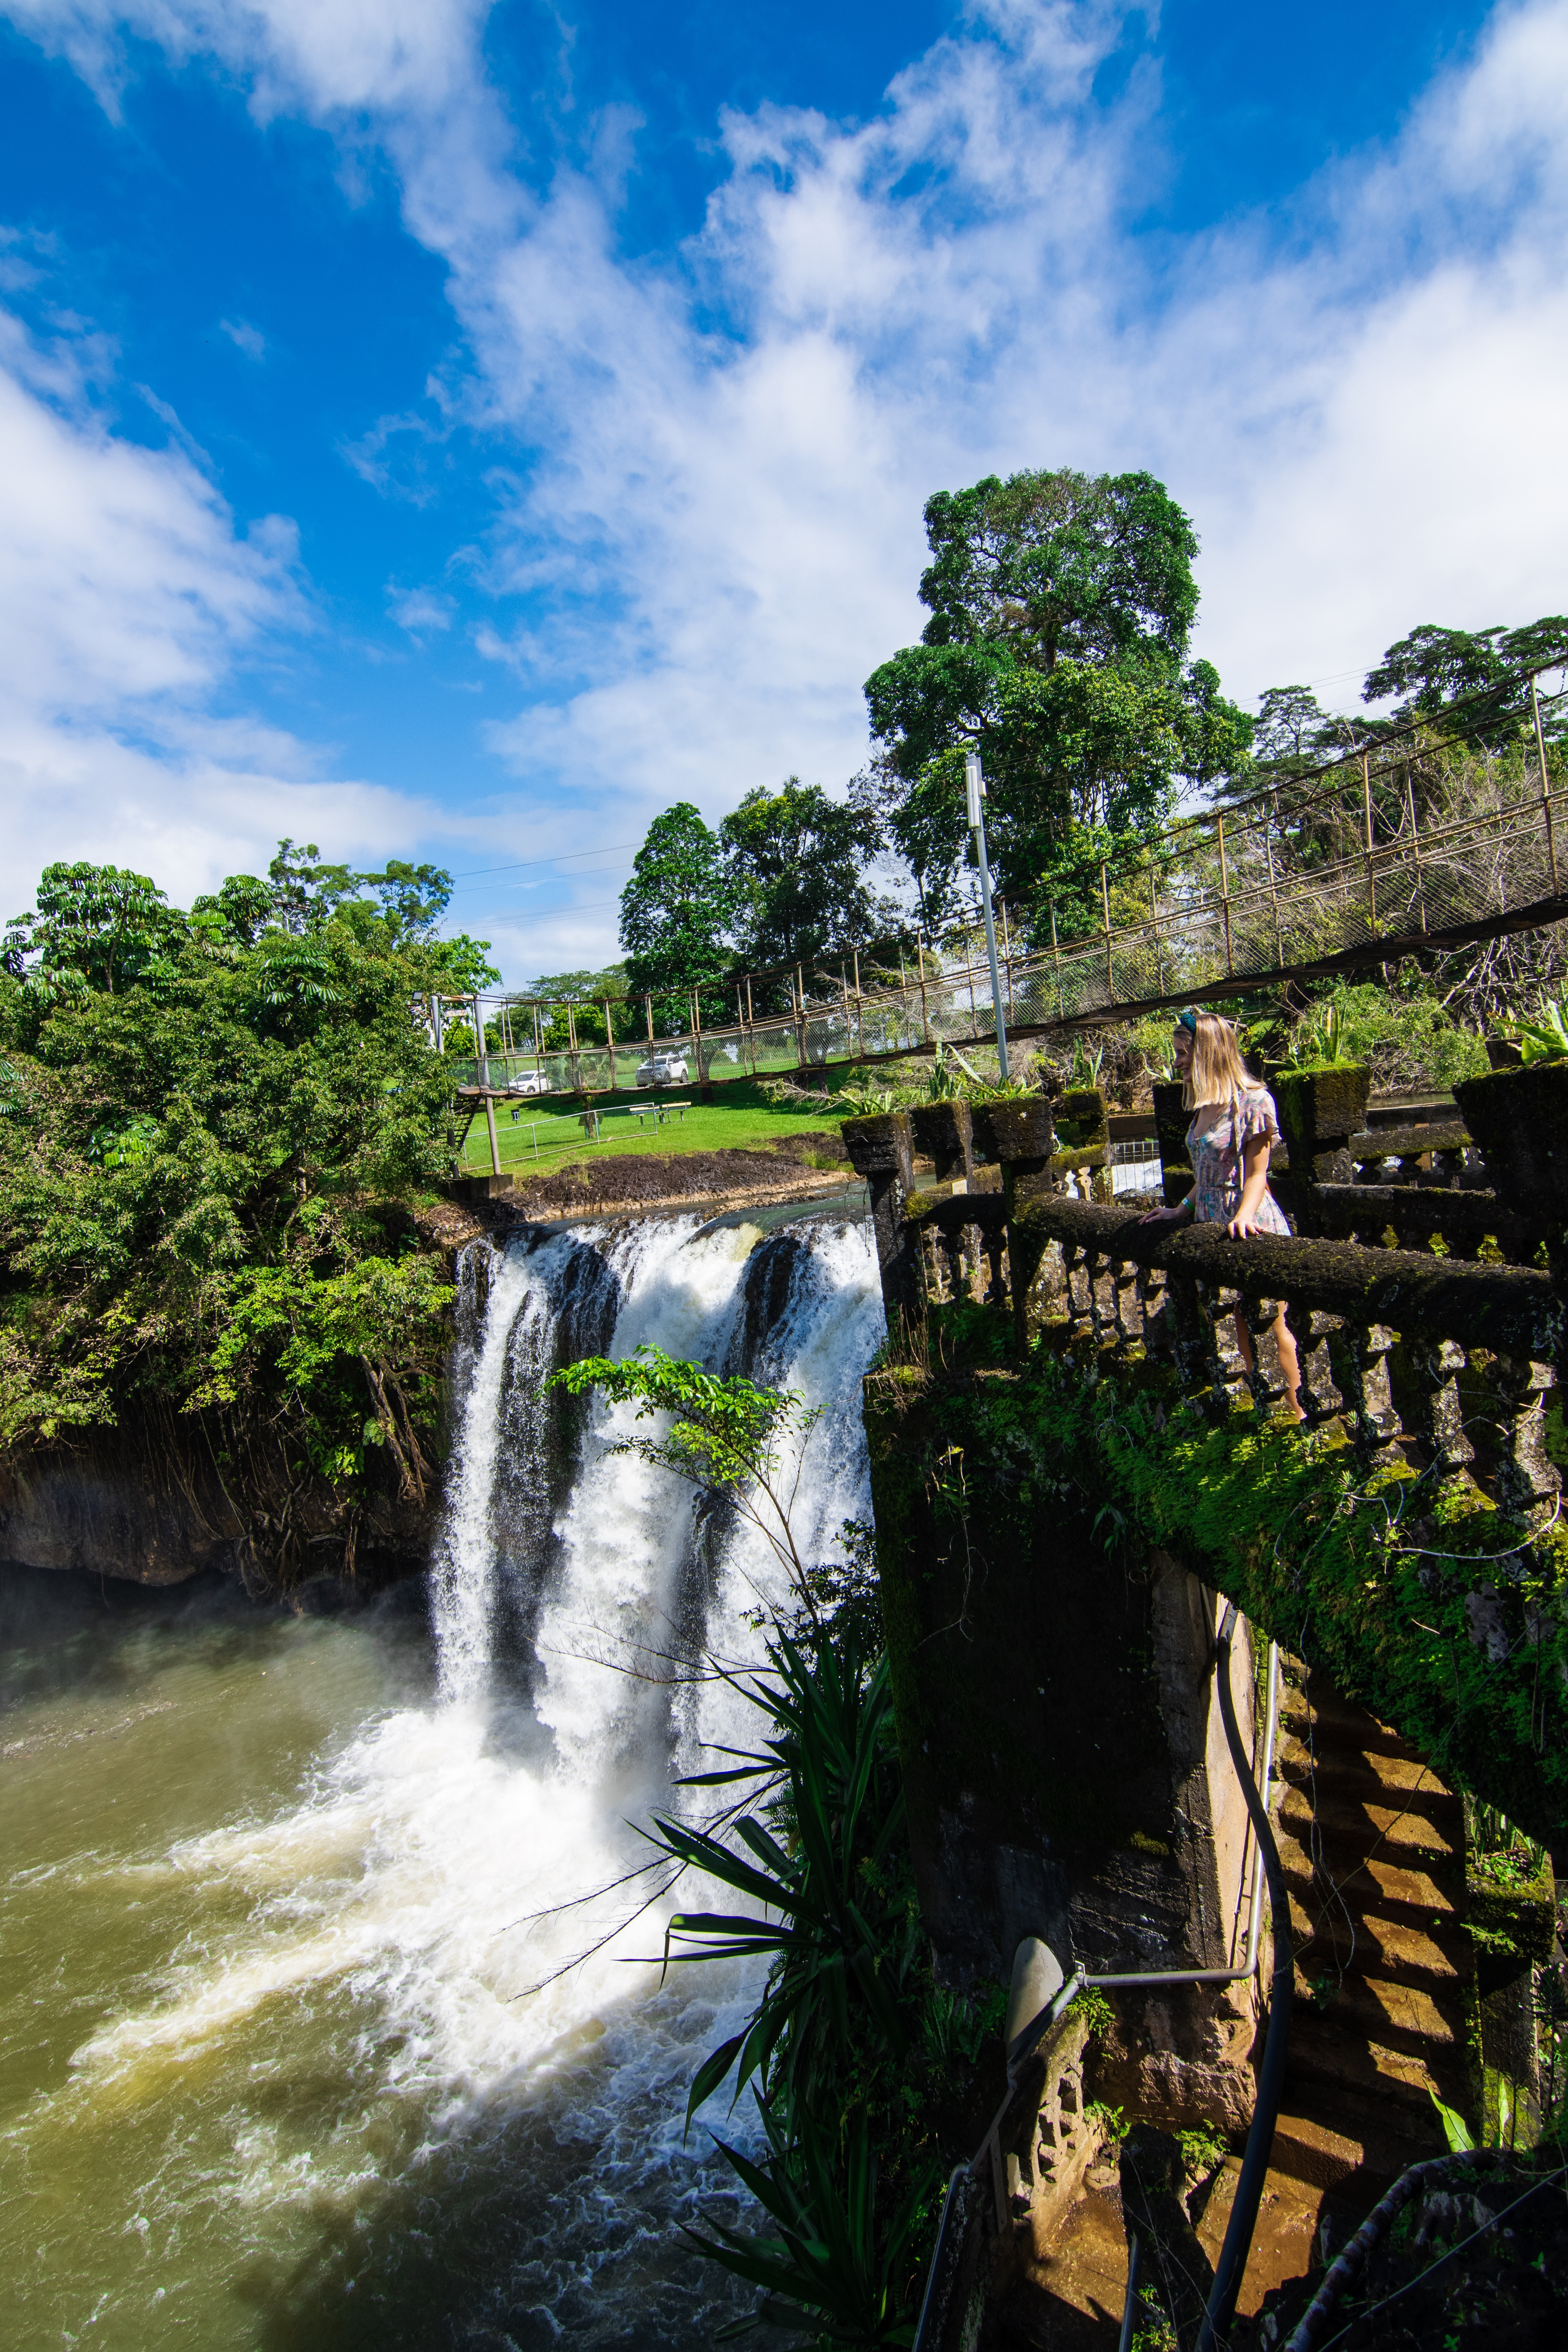 Girl standing next to waterfall at Paronalla Park